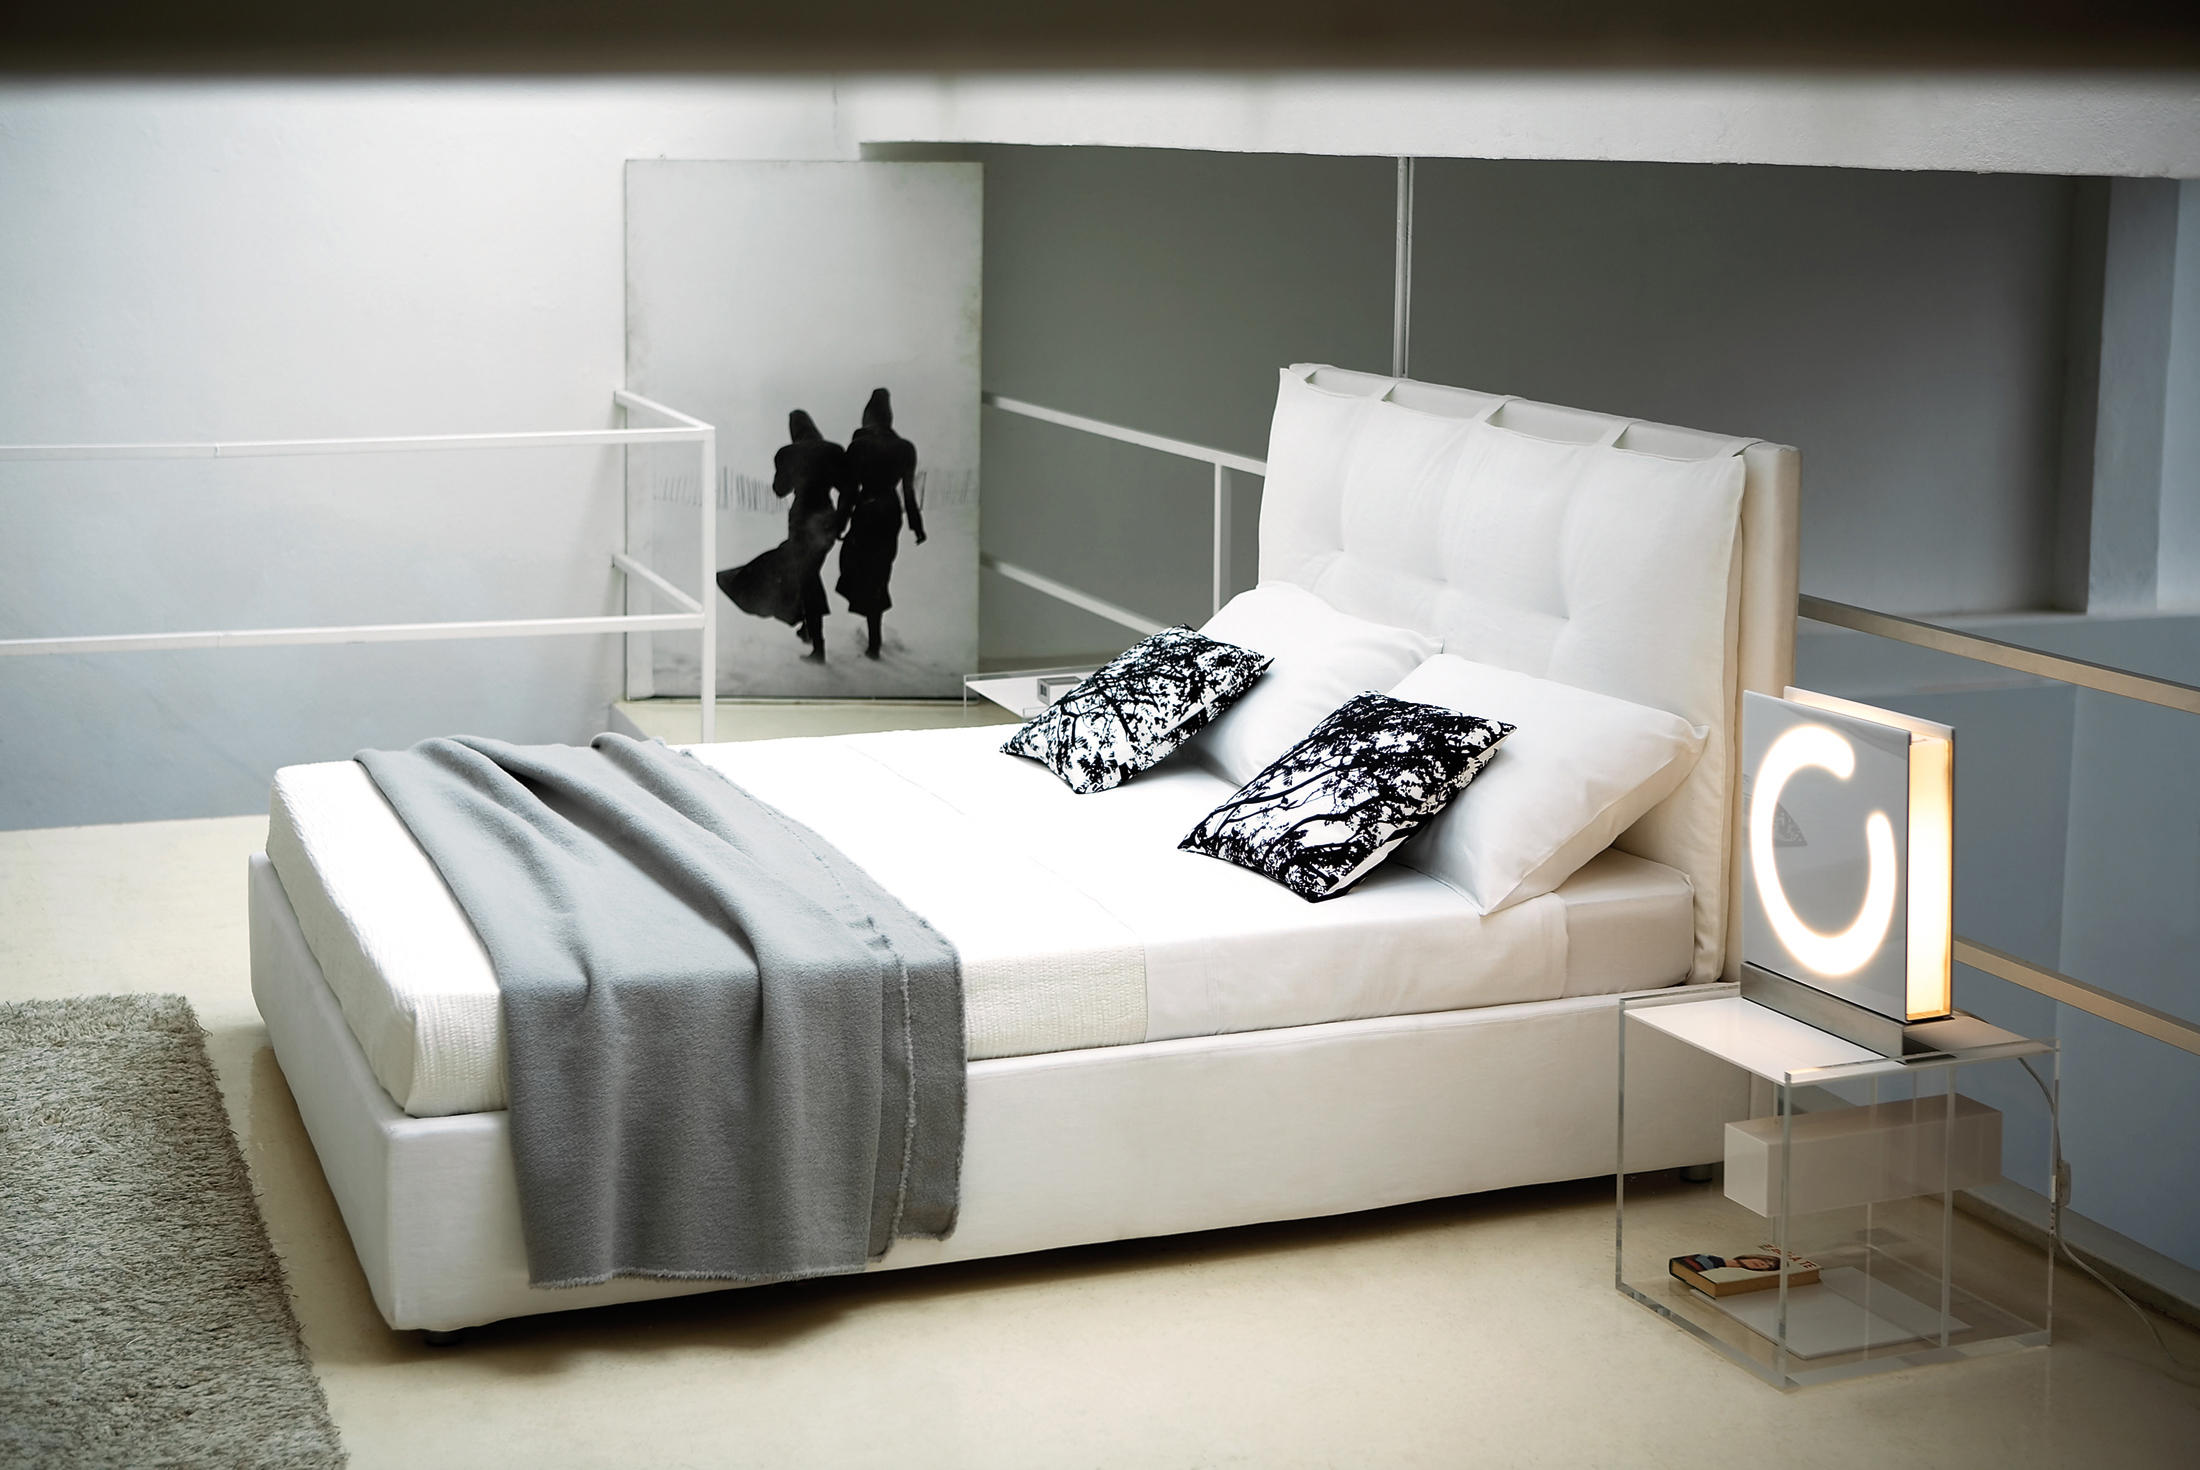 Nirvana 1846 Beds From Zanotta Architonic